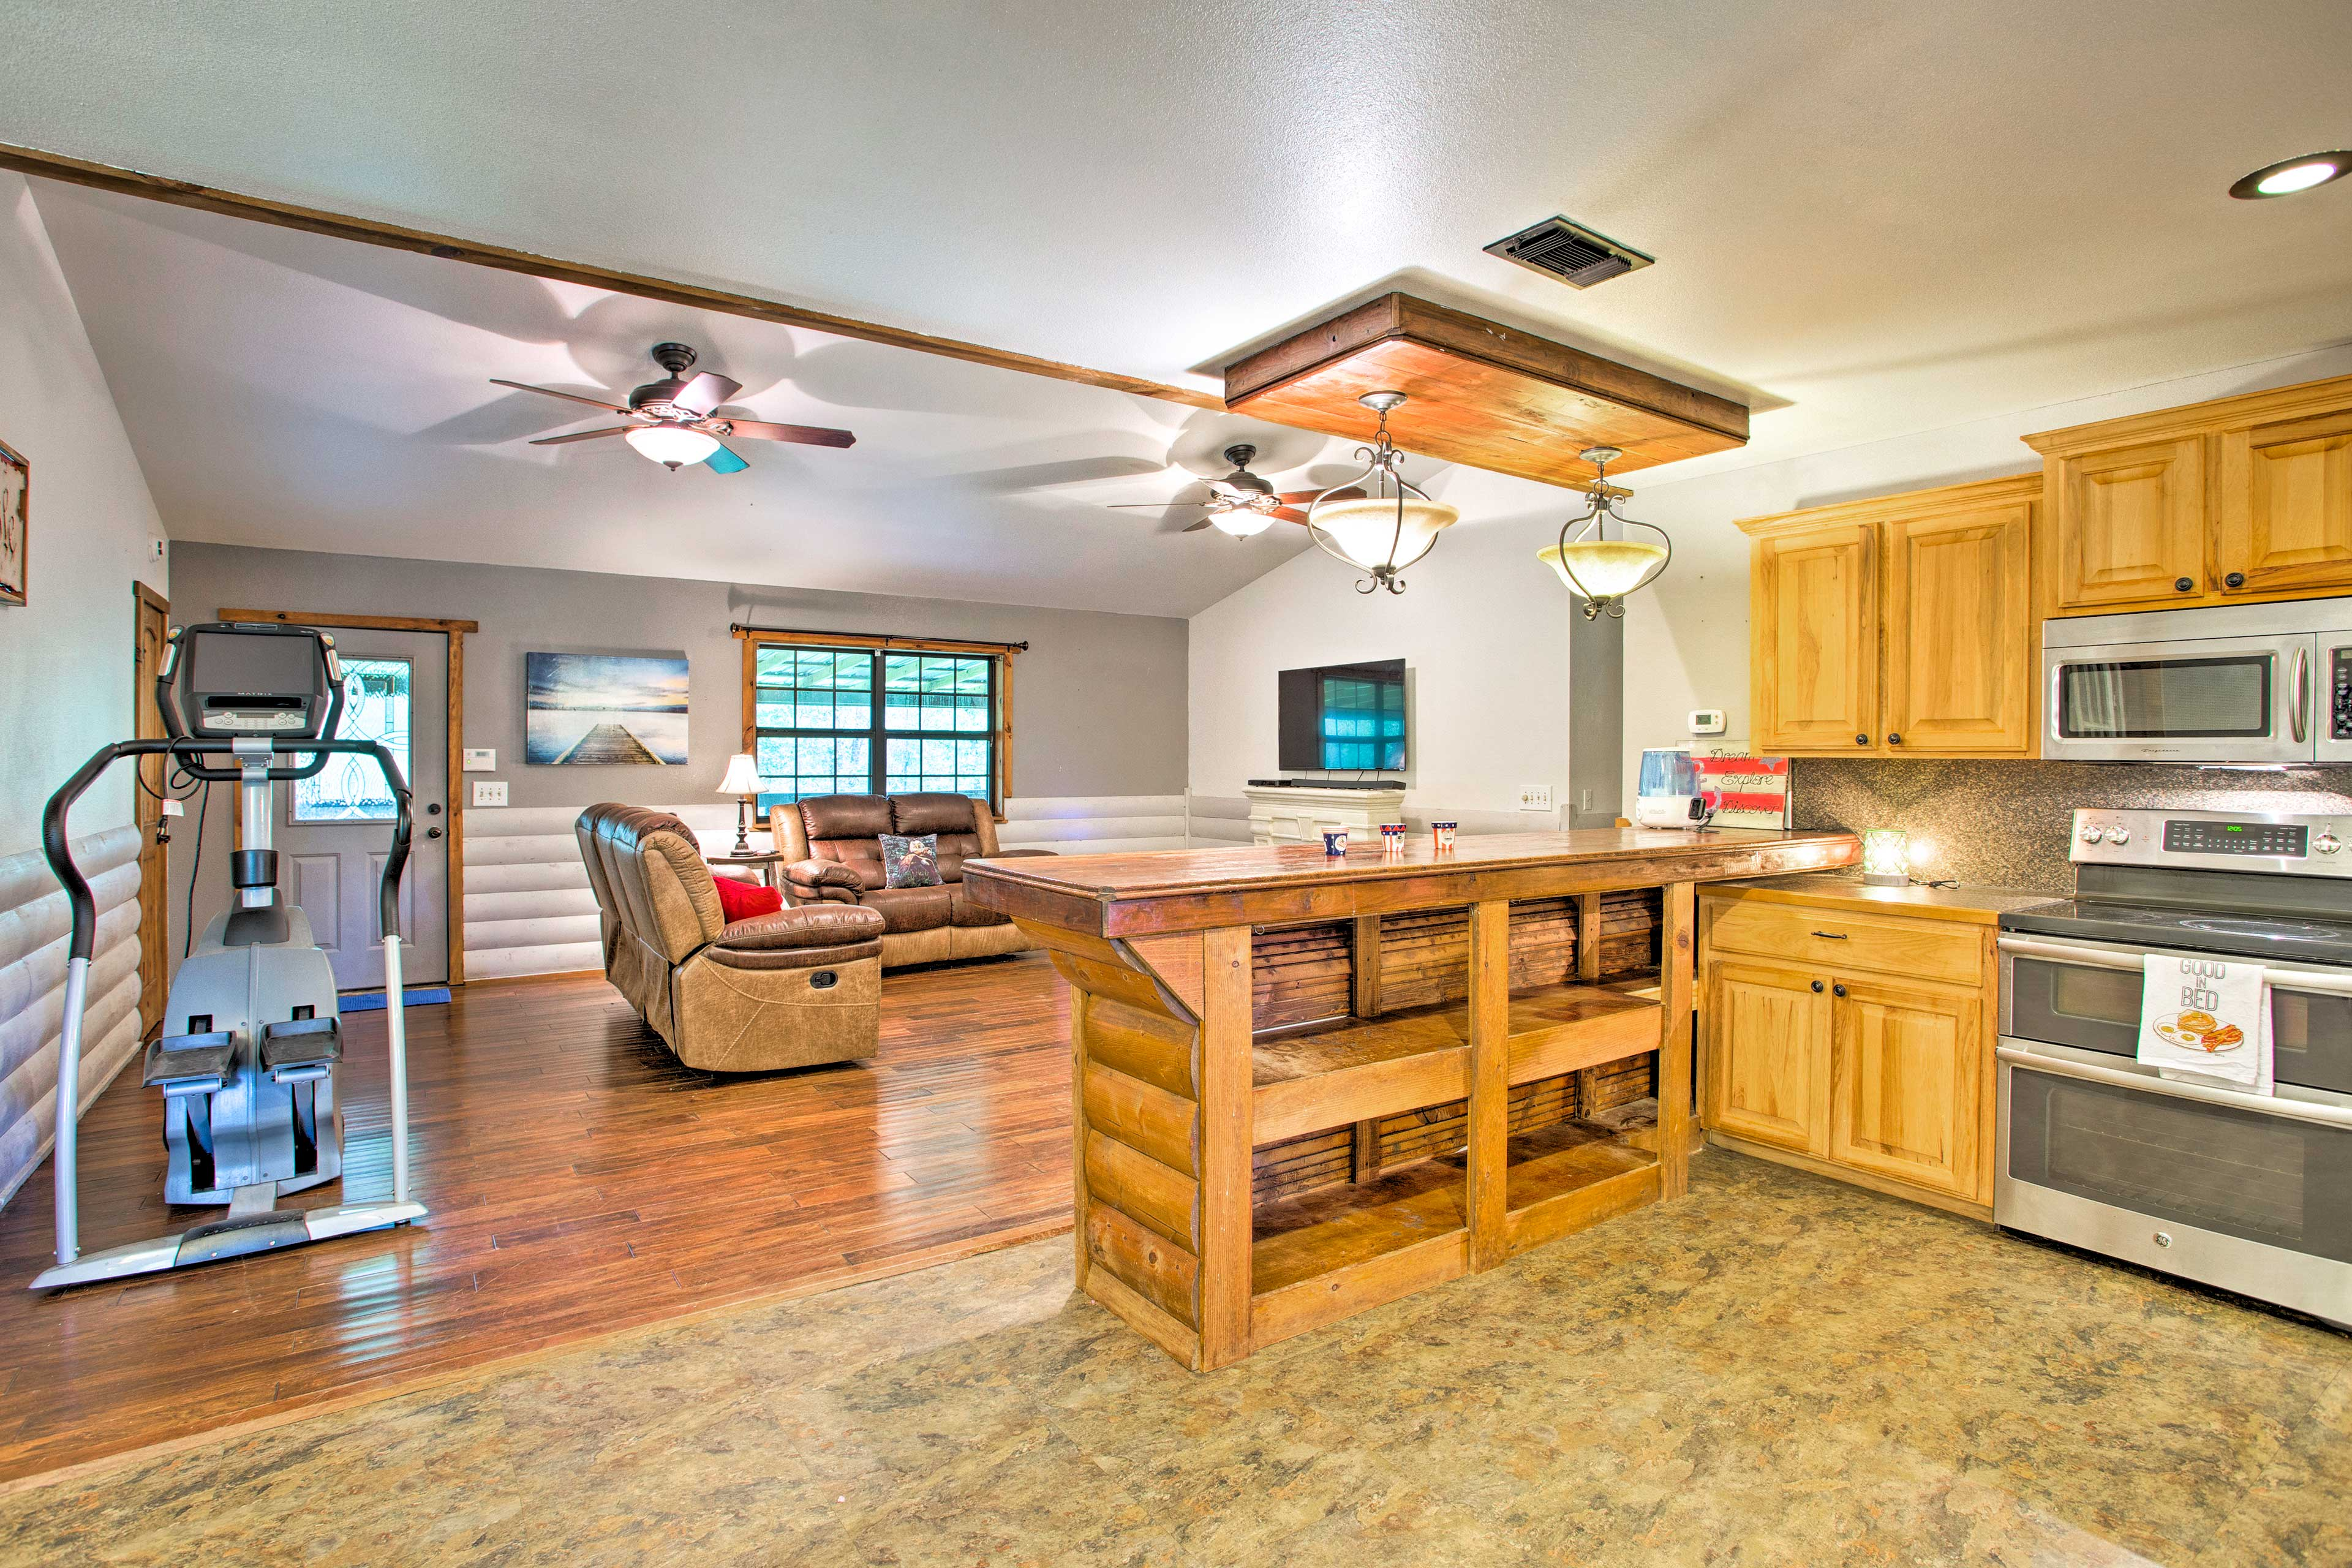 Head into the fully equipped kitchen to whip up a homemade meal!